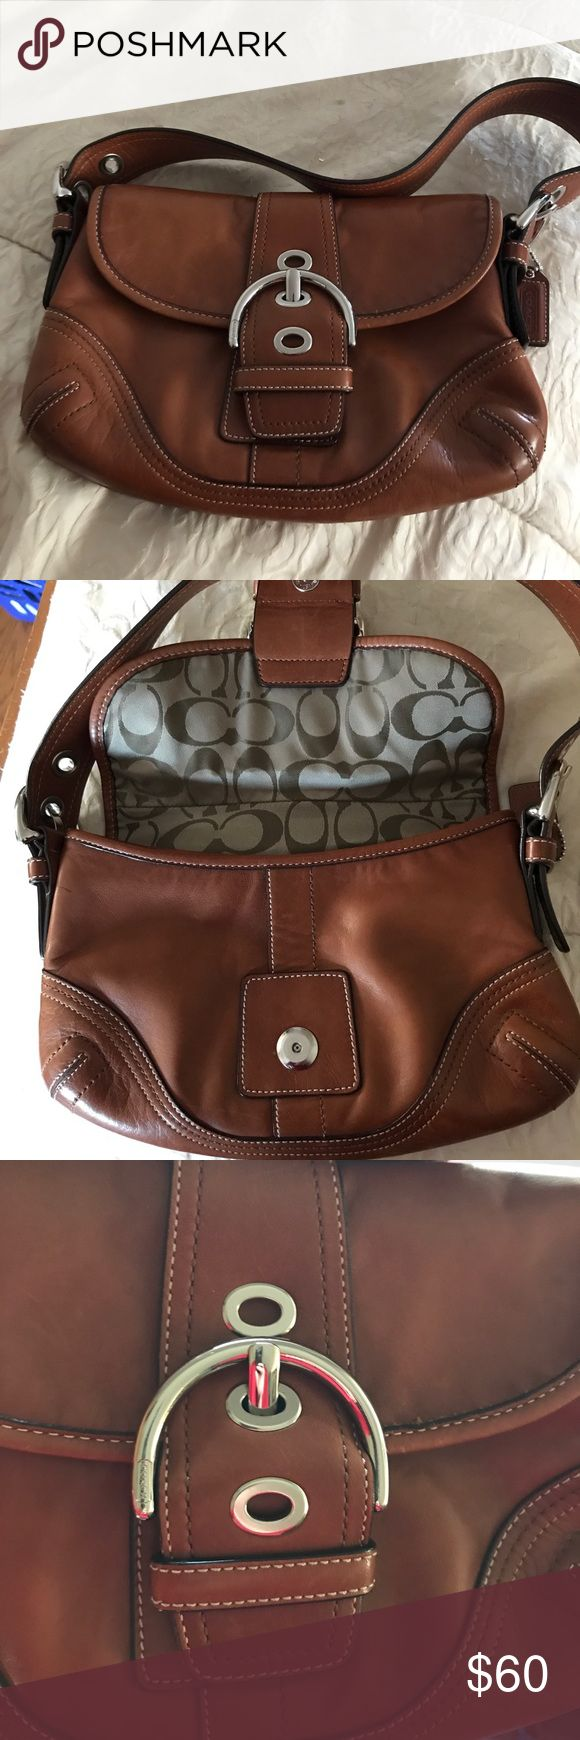 """Coach SOHO Leather handbag EUC Authentic Coach """"Soho"""" shoulder bag. Medium size with silver buckles. Tan/Brown leather and signature jacquard fabric inside There is an outside pocket, and the straps adjust. Large leather buckle flap. Coach Bags Shoulder Bags"""